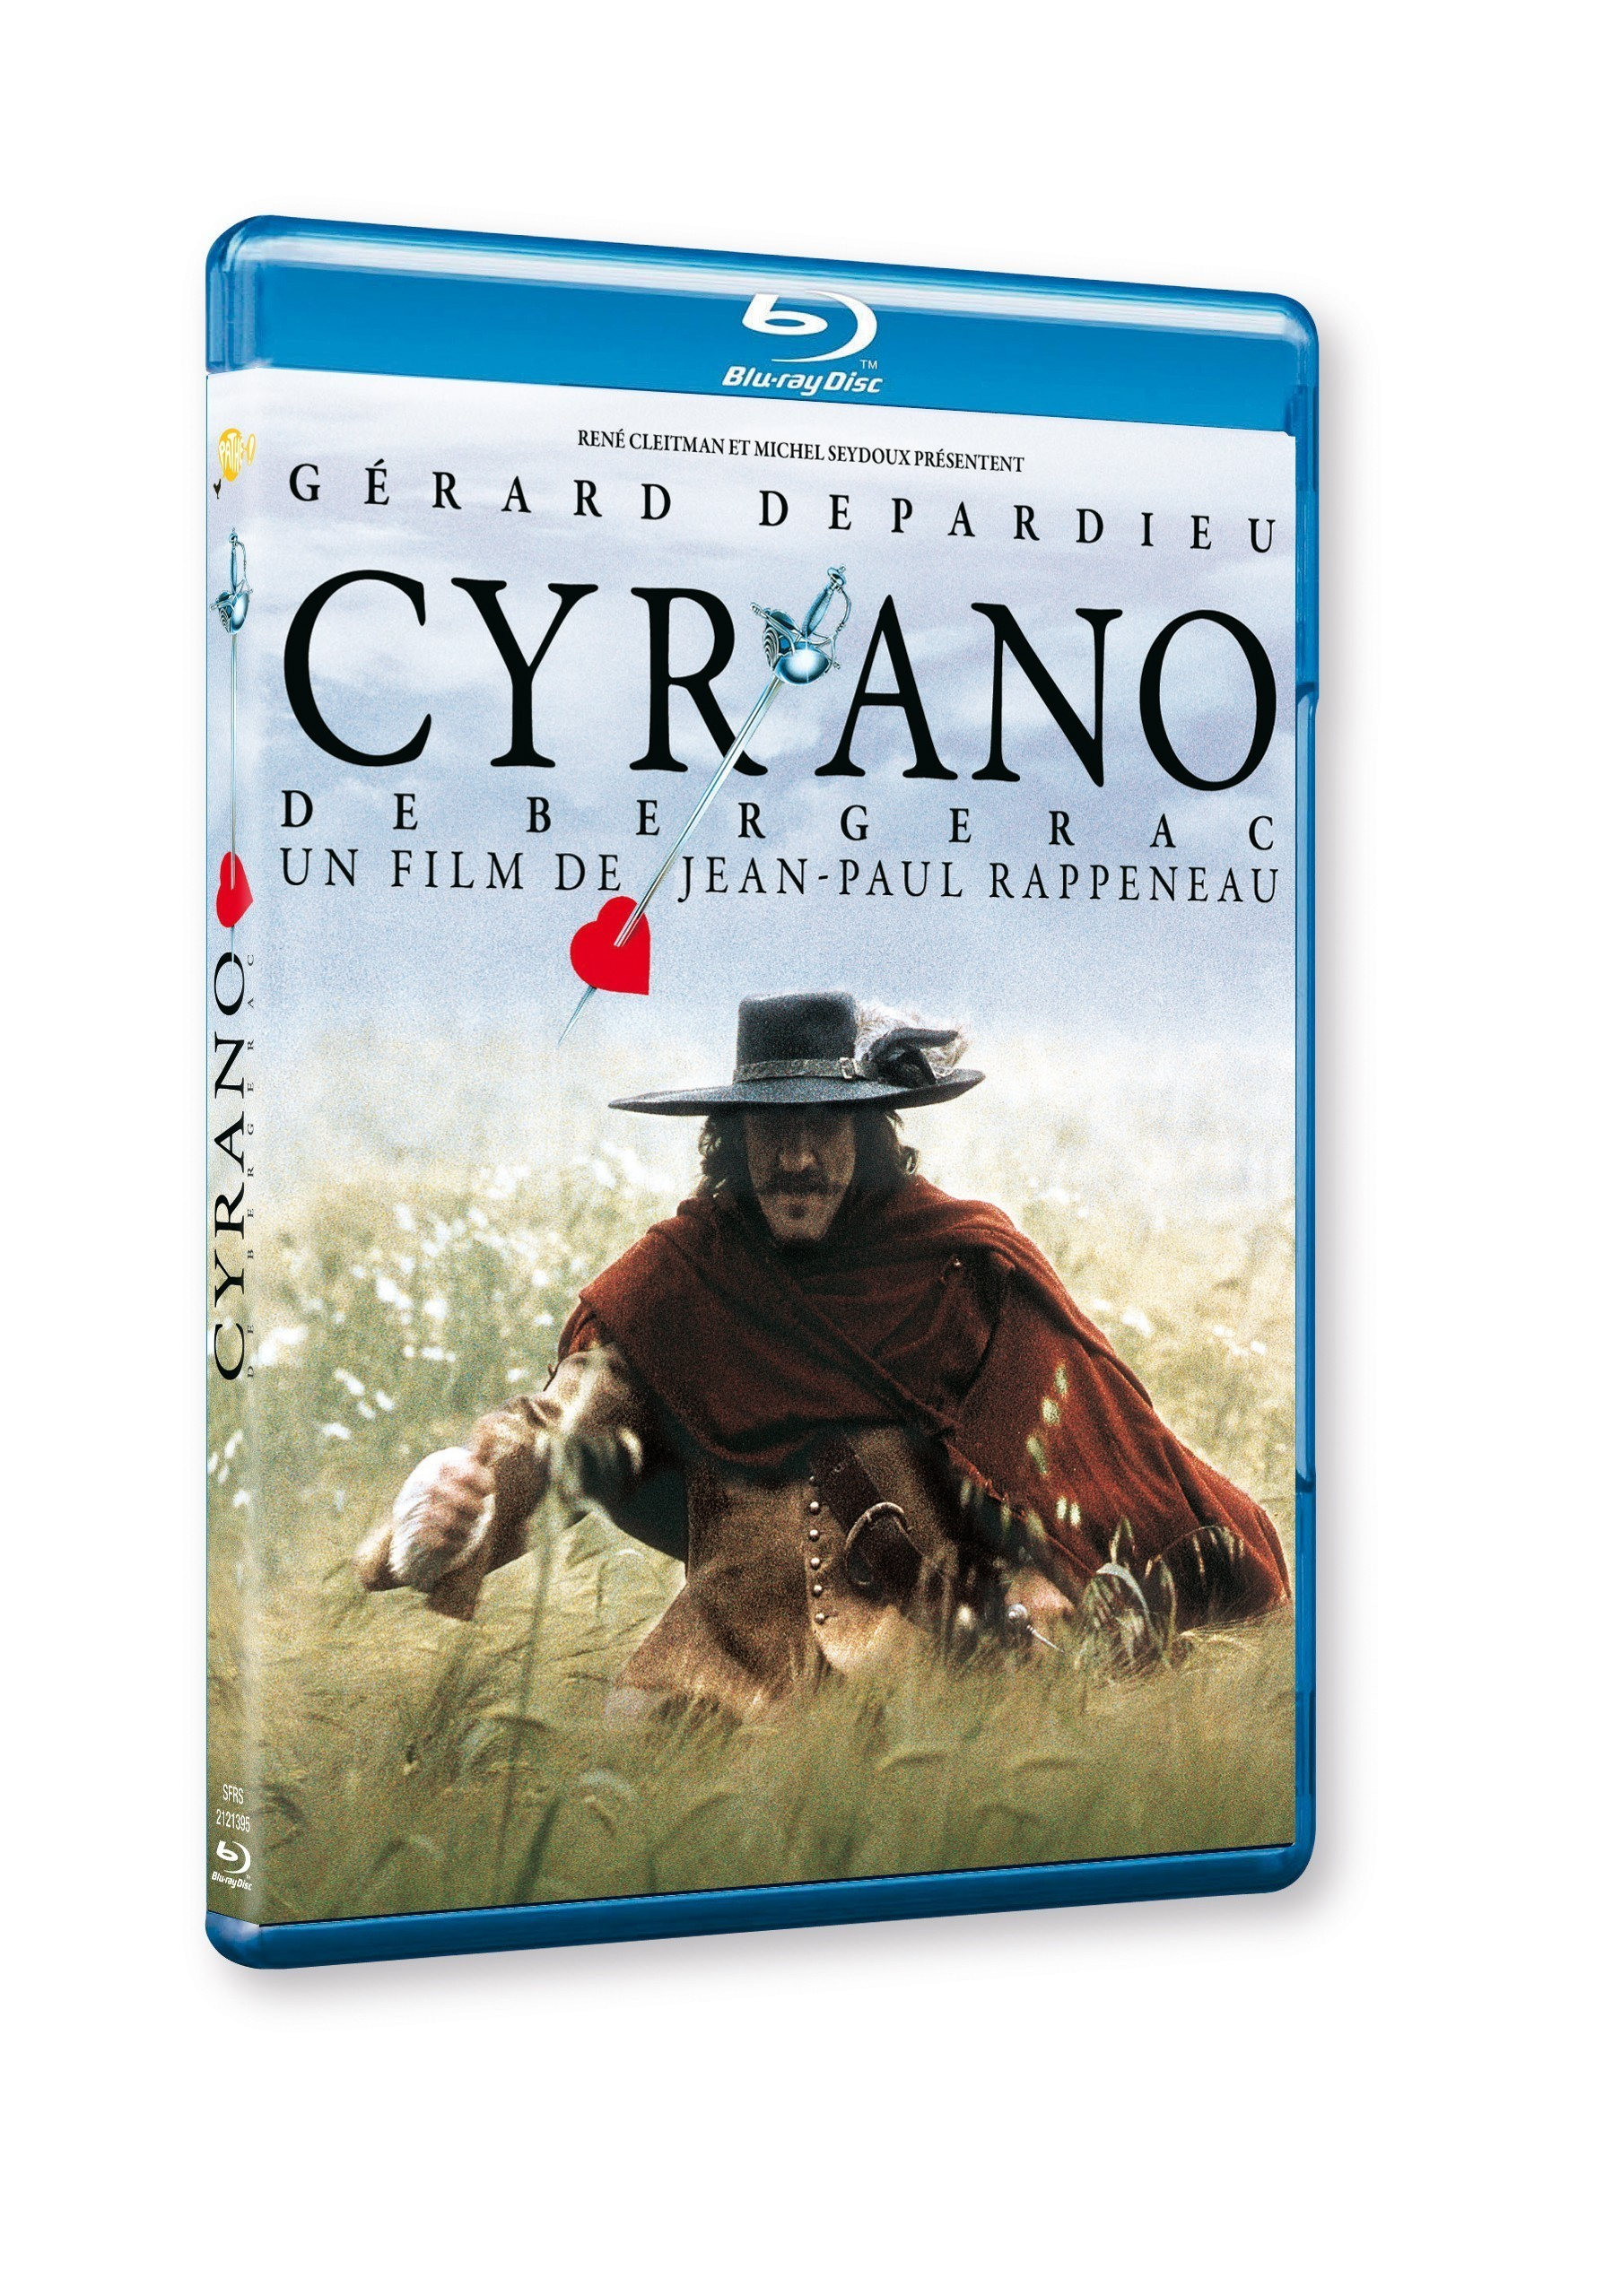 Cyrano.De.Bergerac. 1990 .FRENCH.720p.BluRay.x264-AiRLiNE